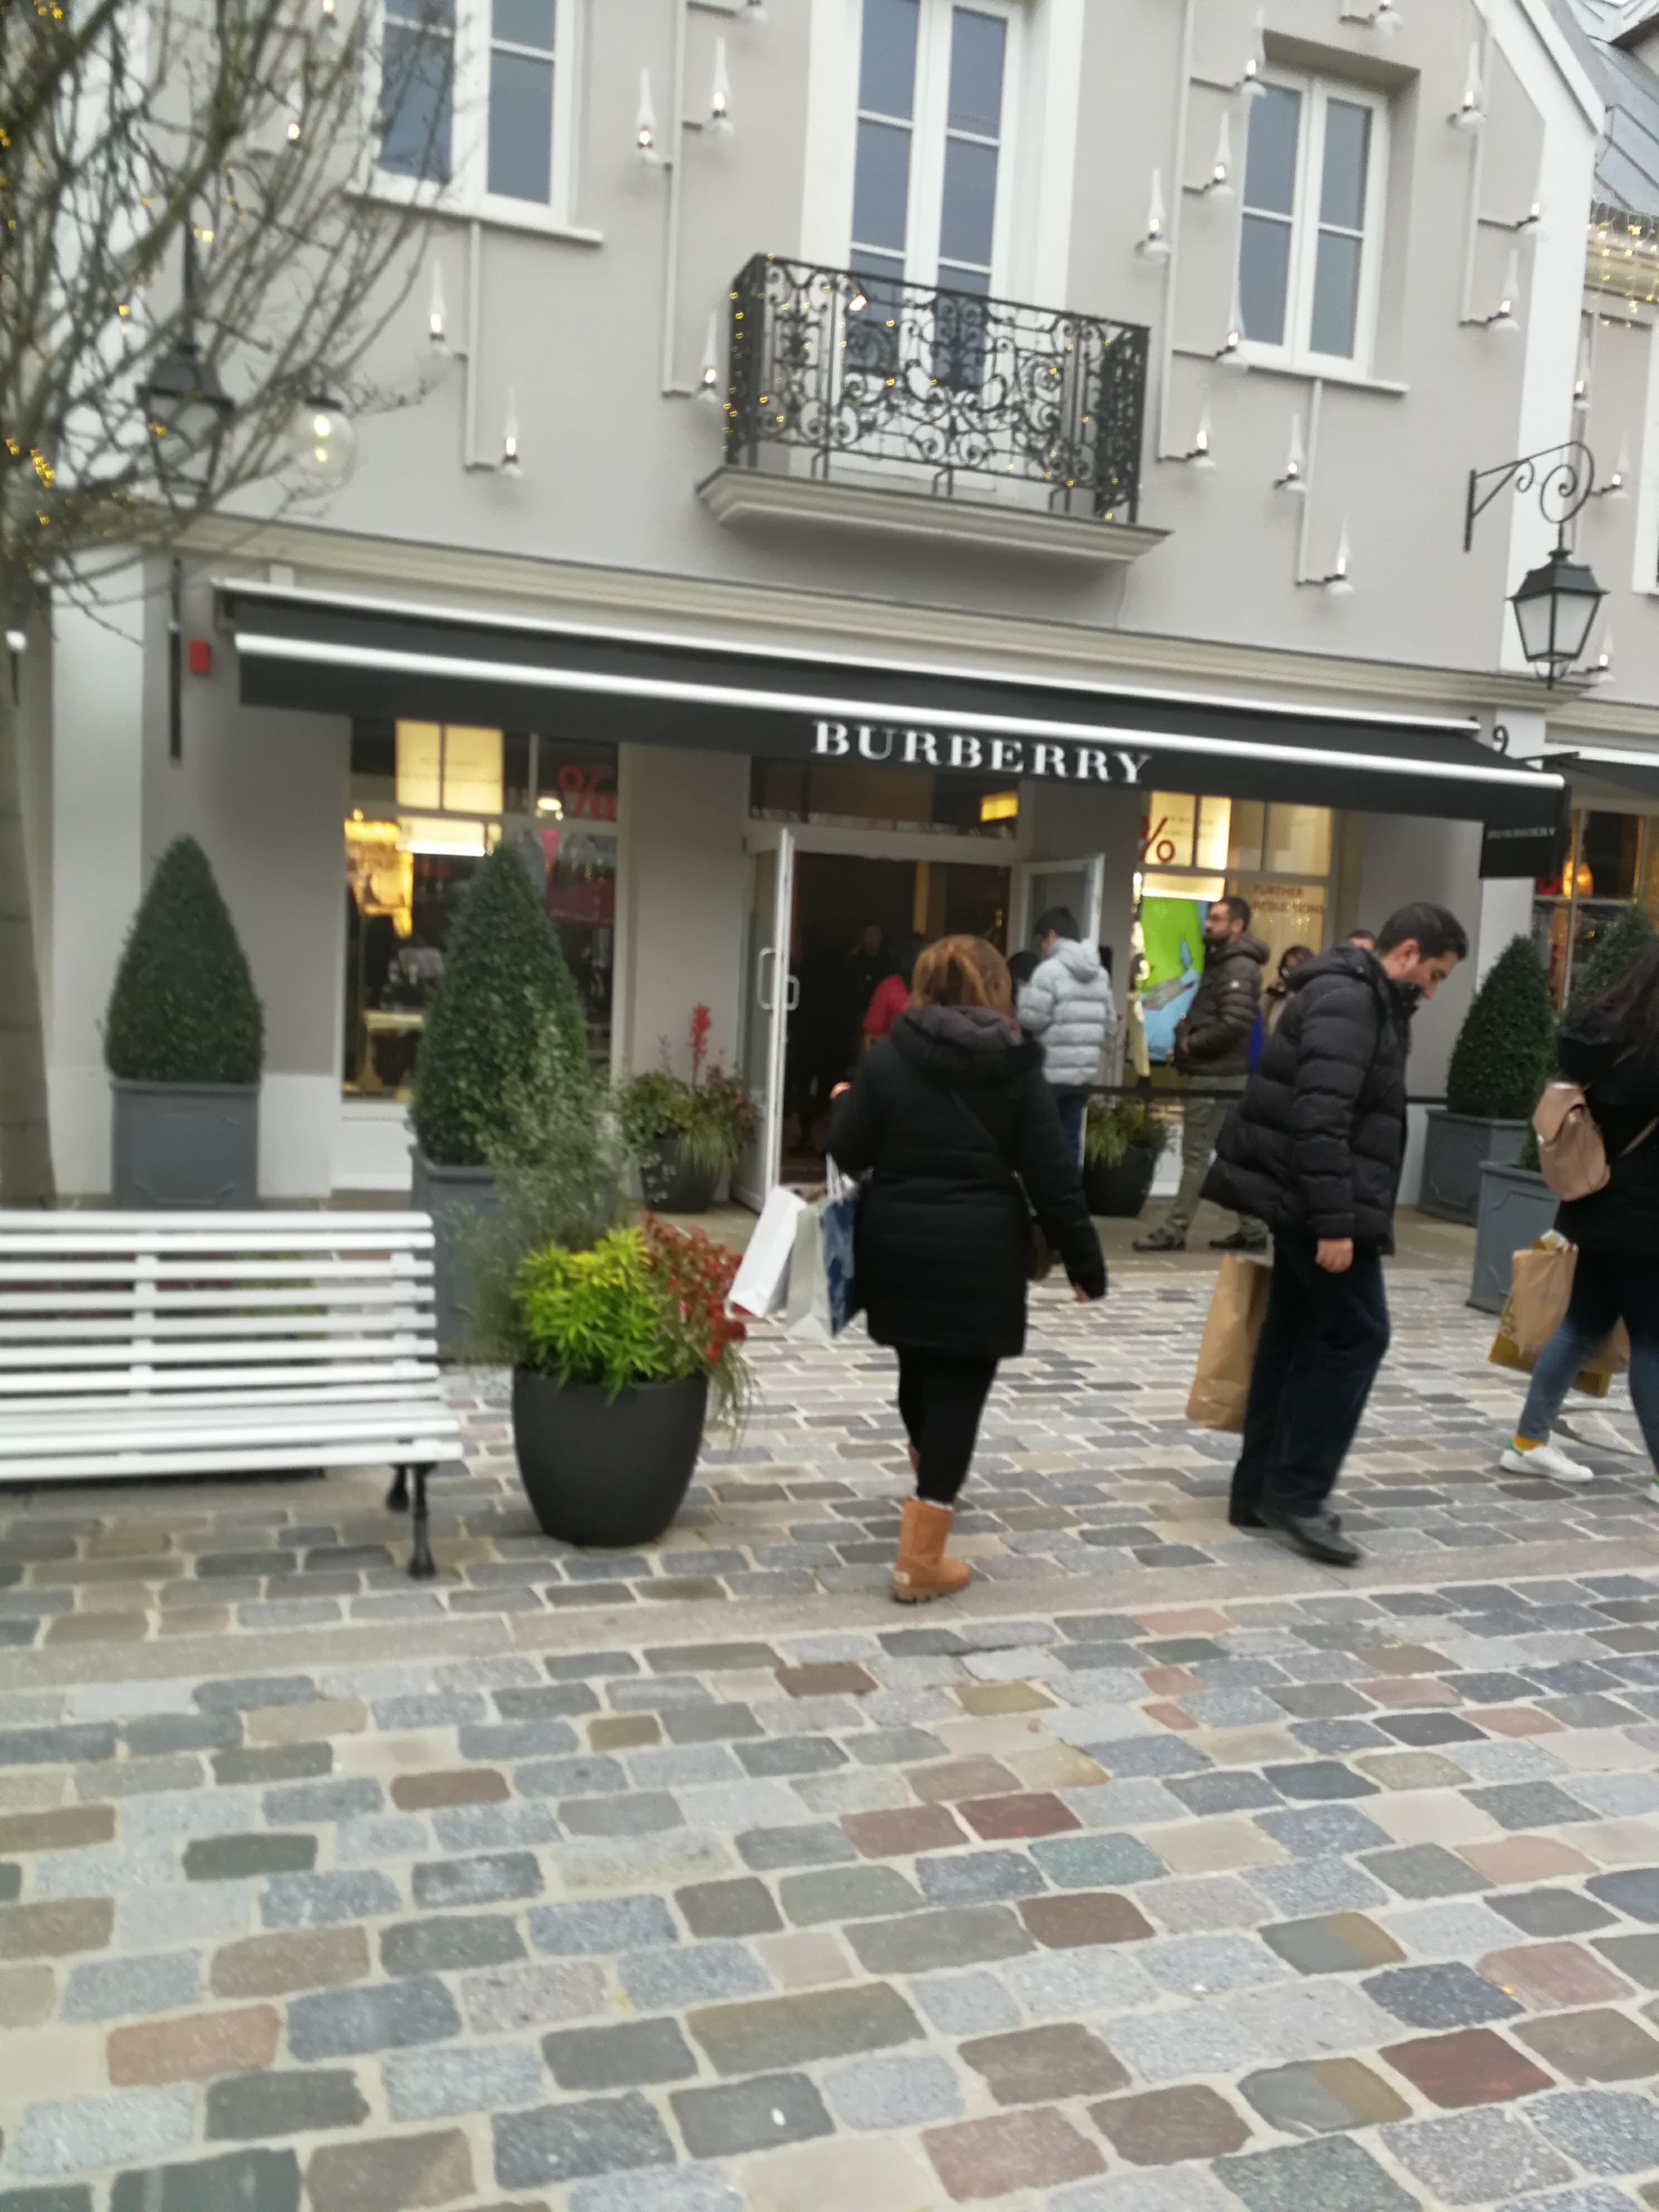 Outlet shopping in Paris, La vallée village